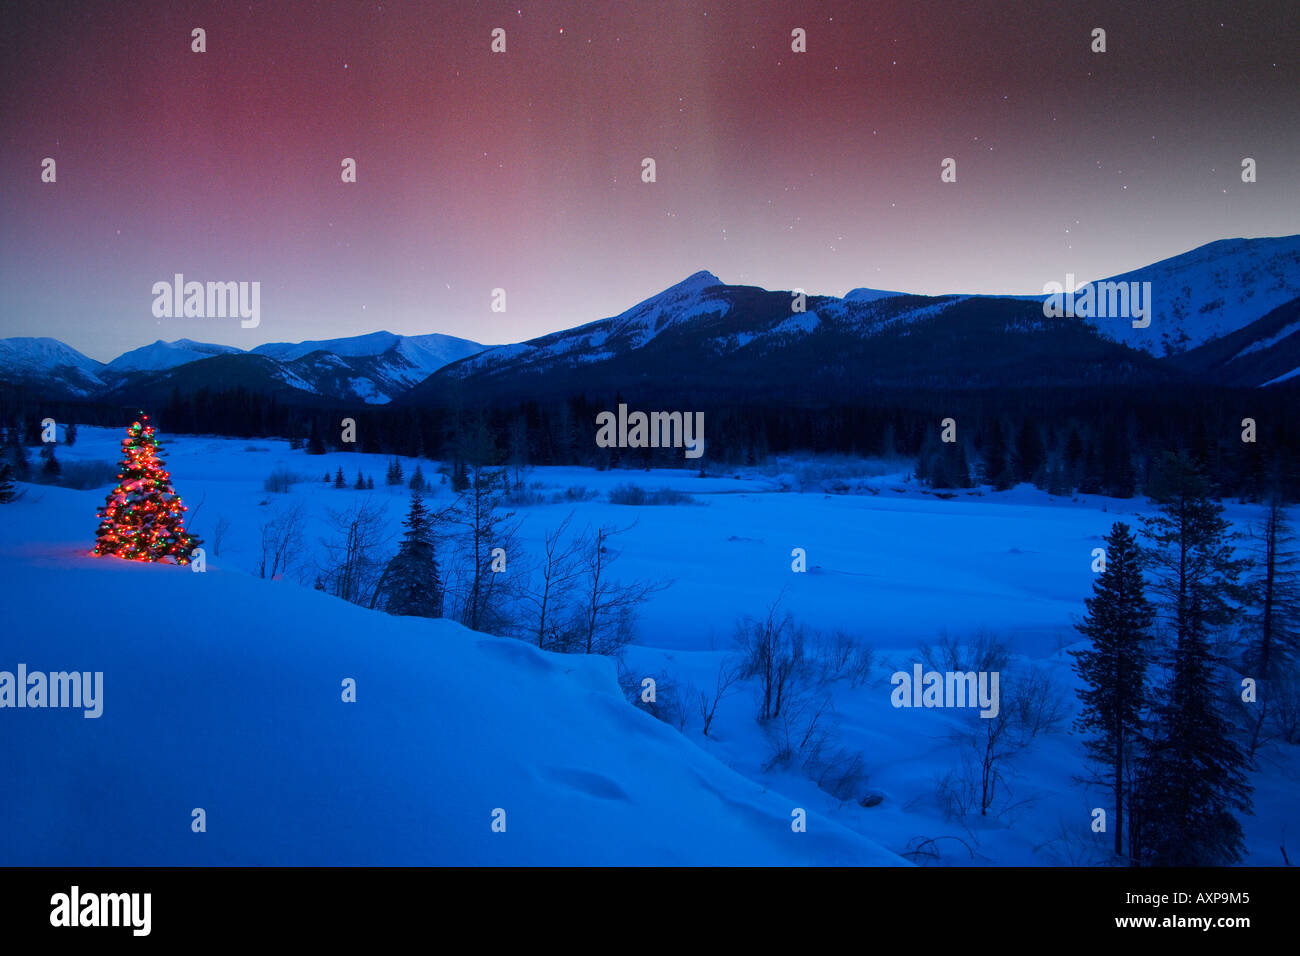 Christmas Tree Under Northern Lights Stock Photo 9653508 Alamy